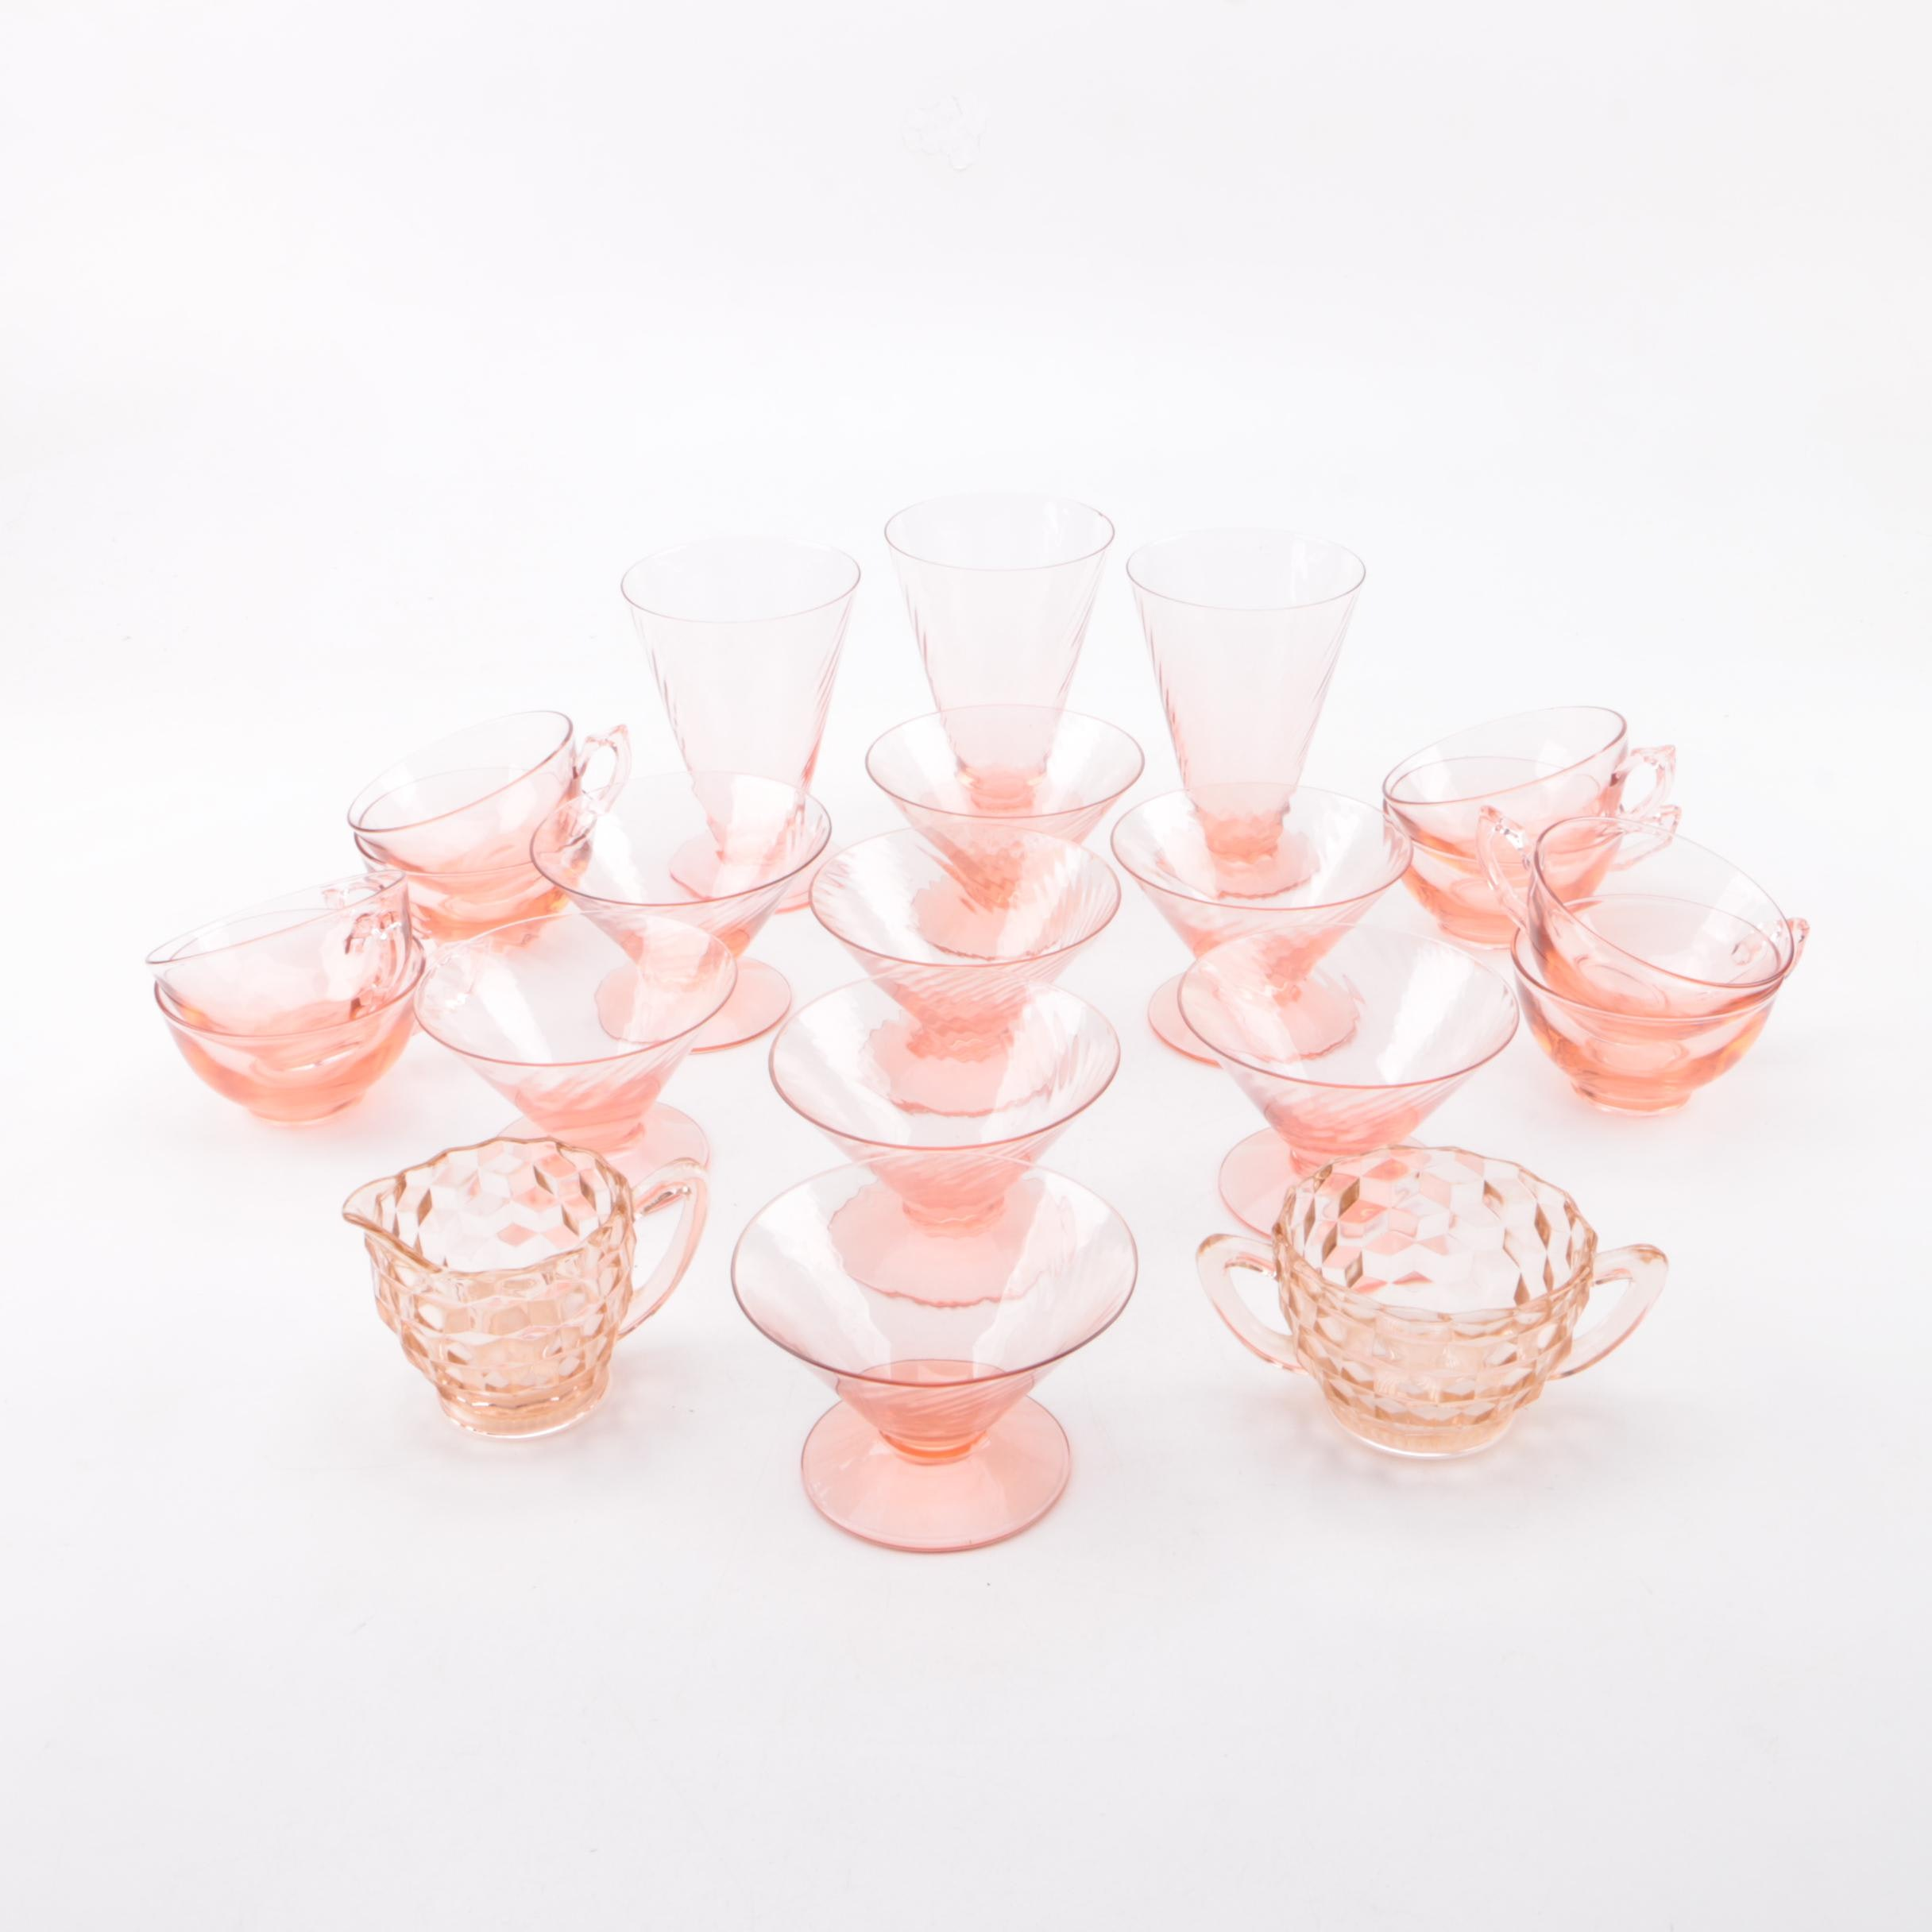 Pink Depression Glass with Heisey Punch Cups